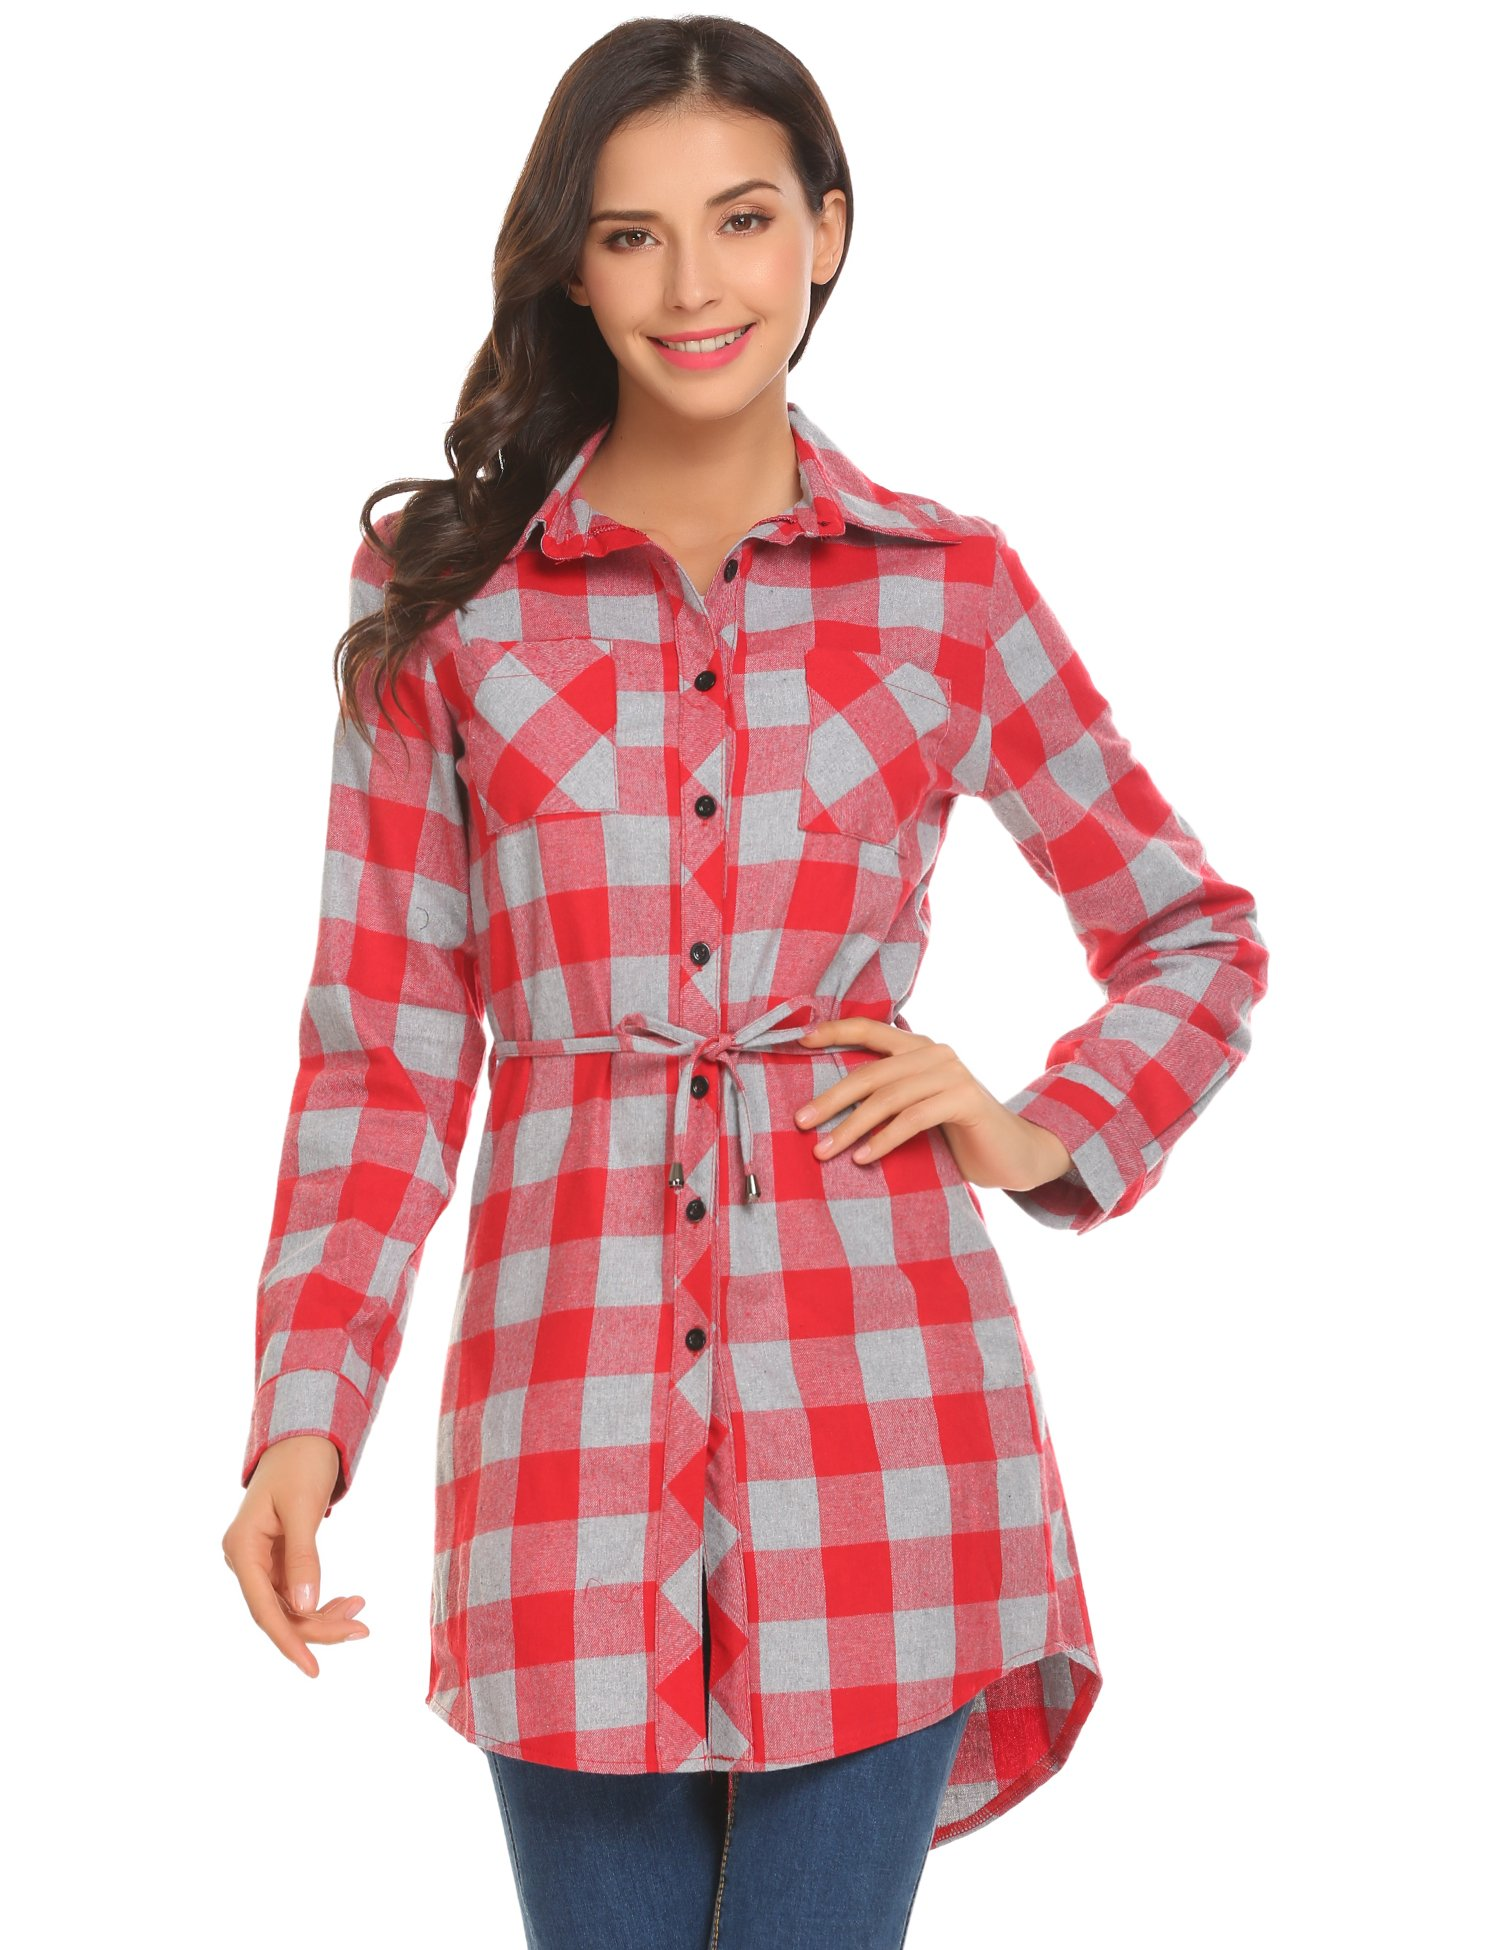 HOTOUCH Ladies Casual Plaid Blouse Tops with Belt, Red Gray, Large